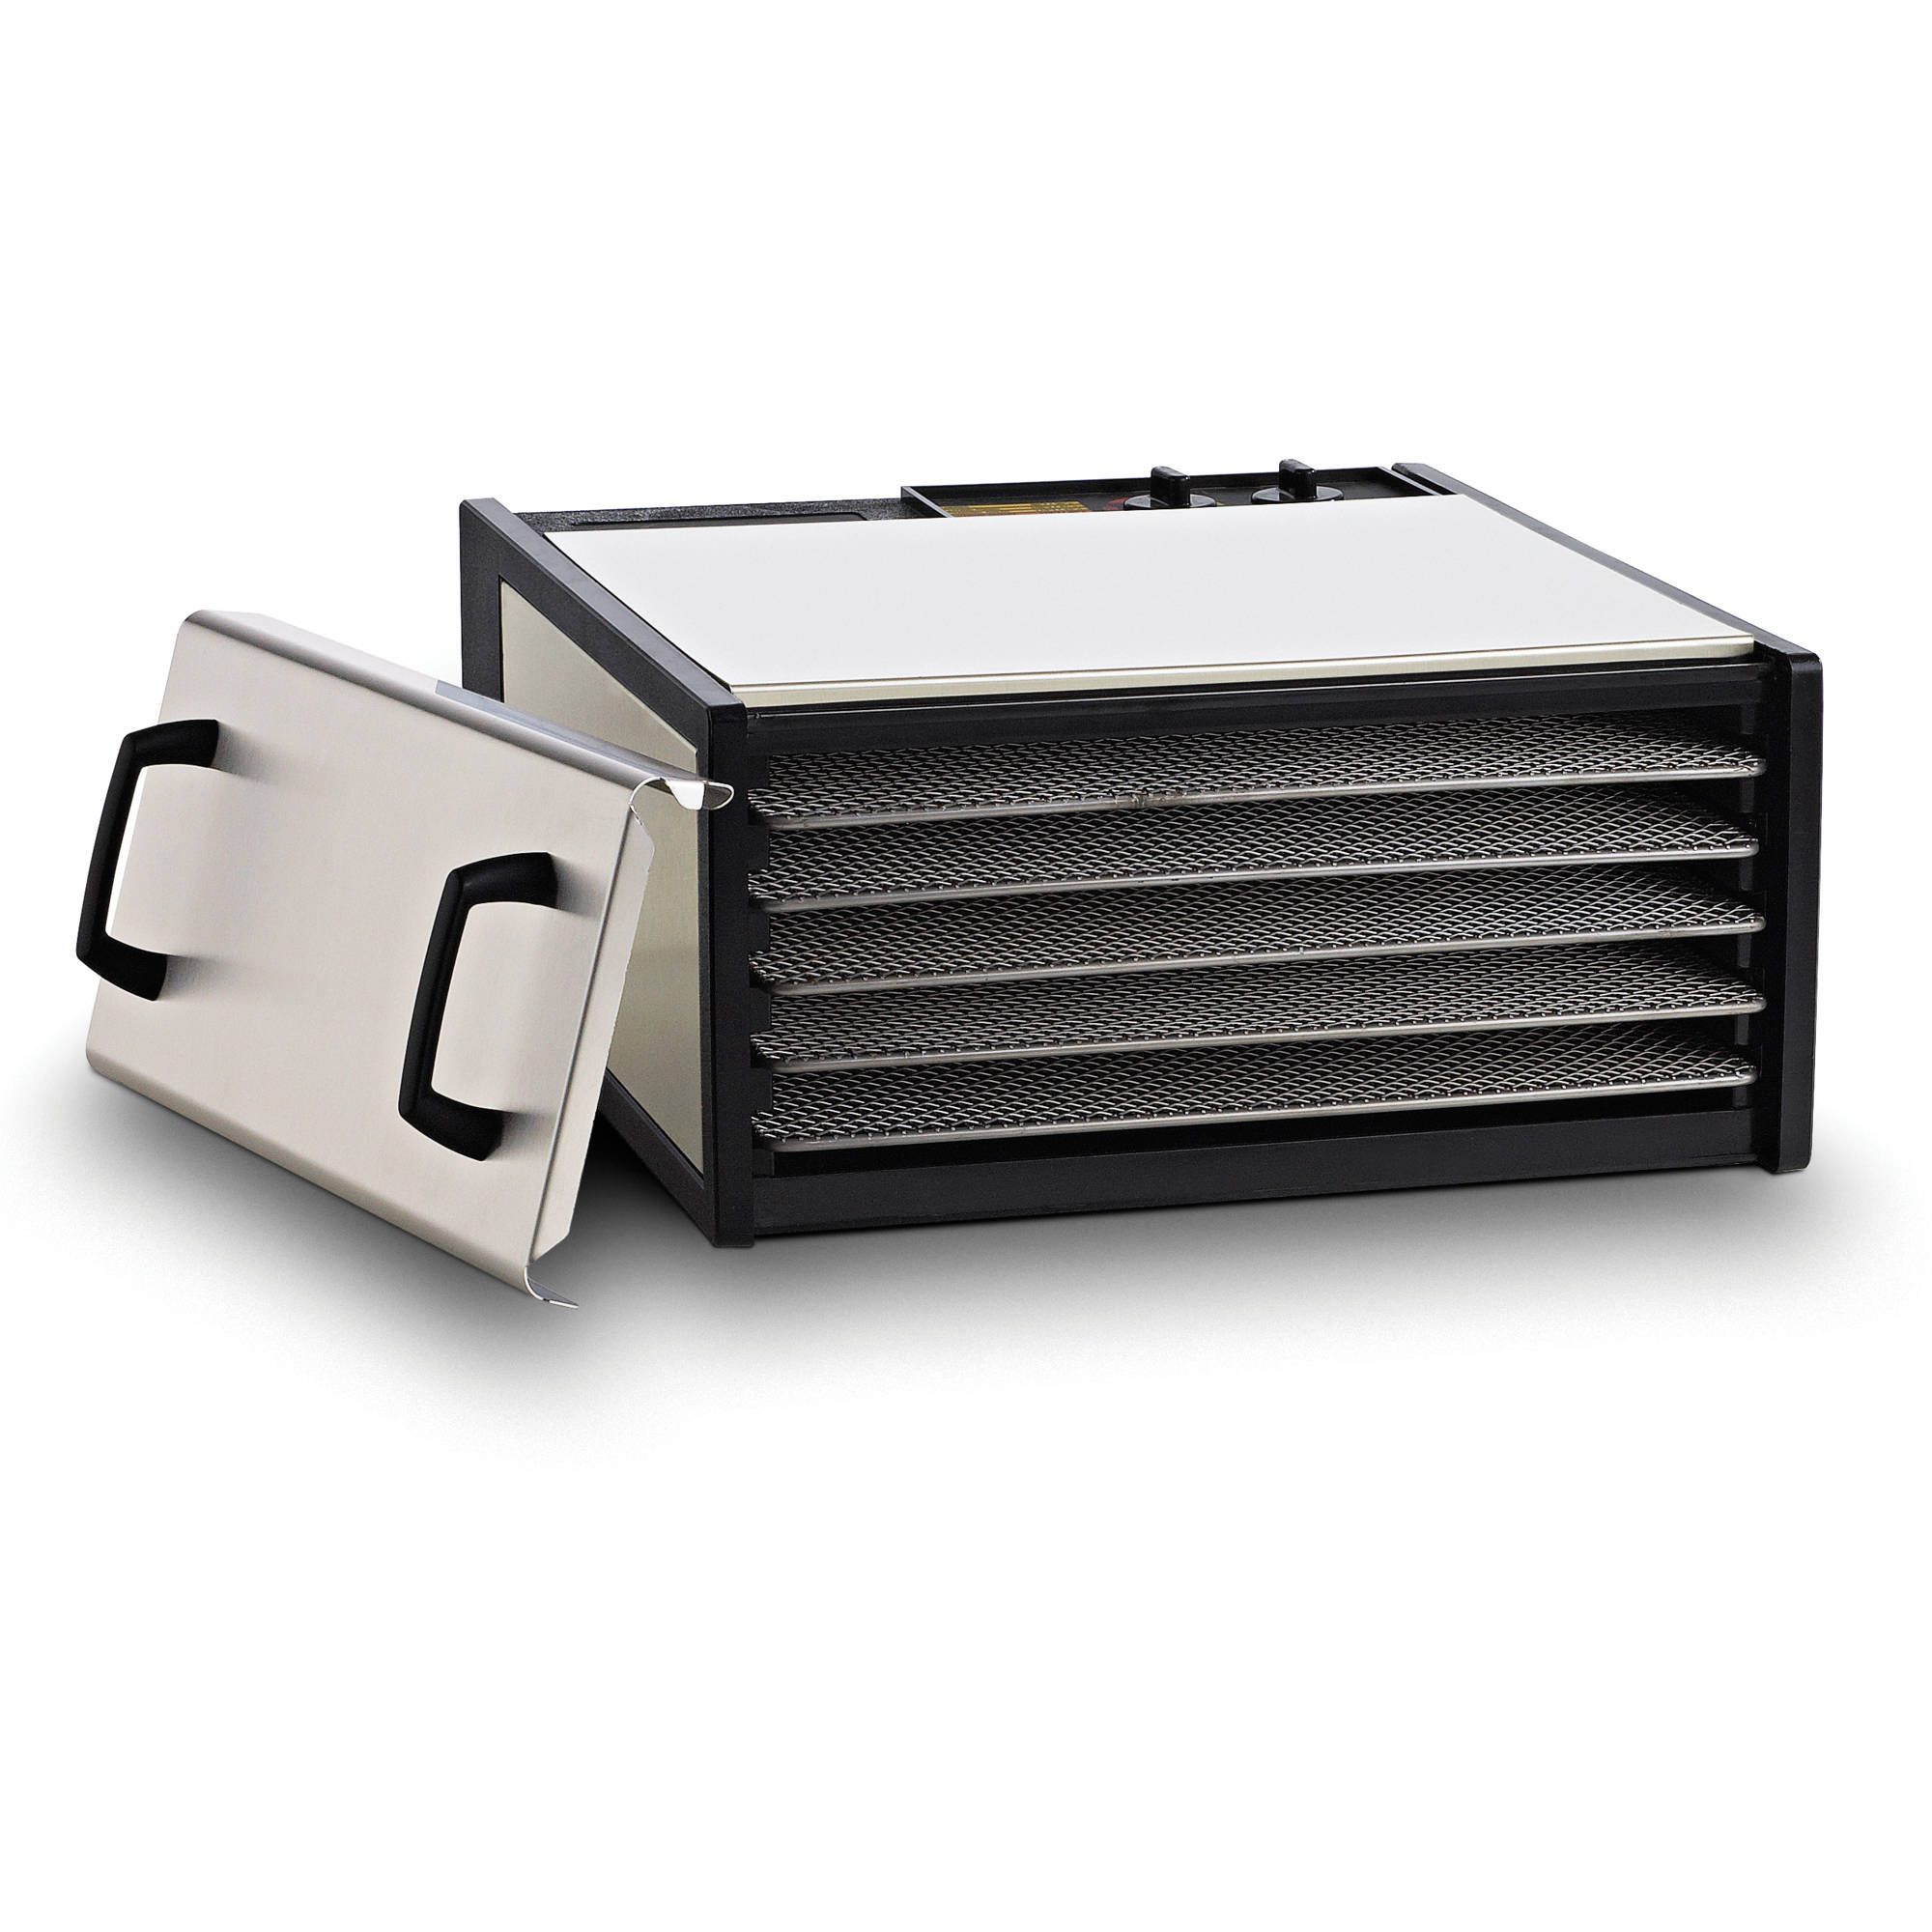 Excalibur 5-Tray Dehydrator with Timer, Stainless Steel